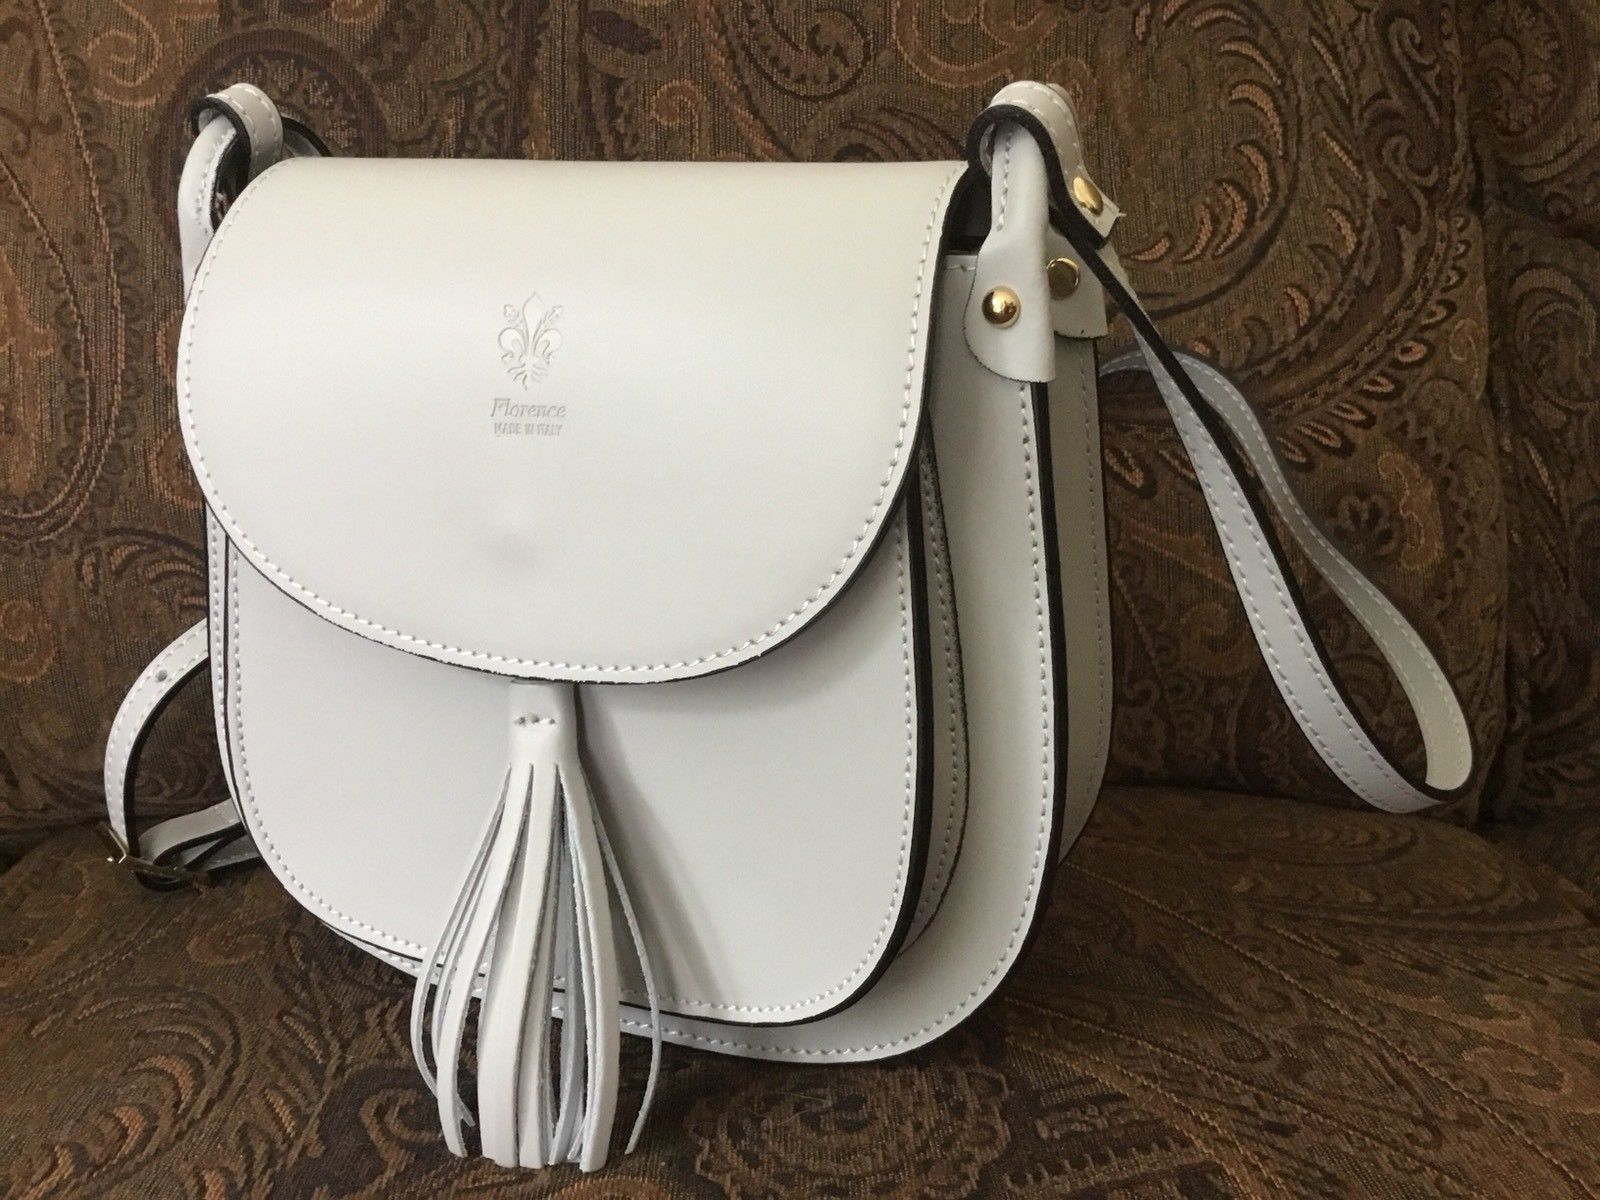 10fb02579d1e S l1600. S l1600. Previous. Crossbody Beige Medium Bag Italian Genuine  Leather Hand made in Italy Florence